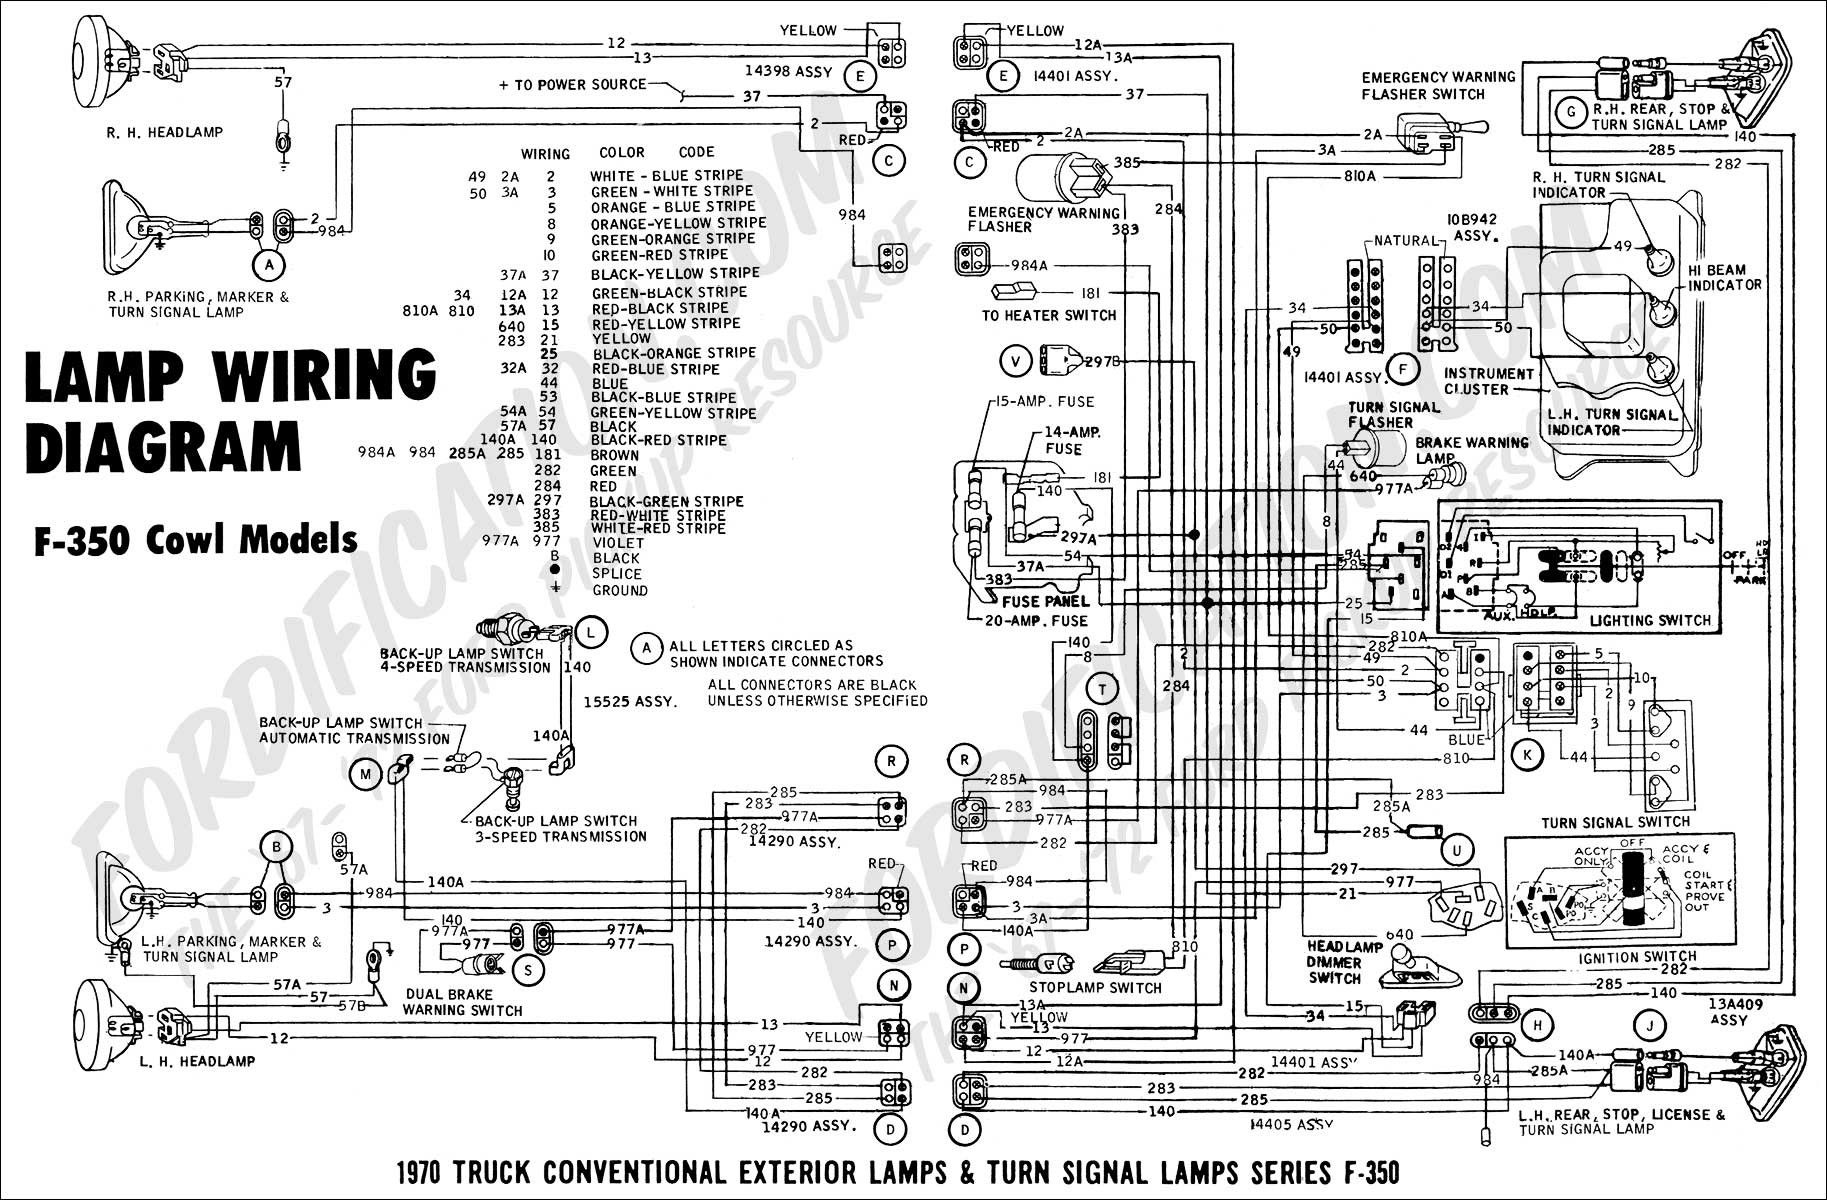 2000 gtp fuse box diagrams new basic automotive wiring diagrams diagram wiringdiagram  new basic automotive wiring diagrams